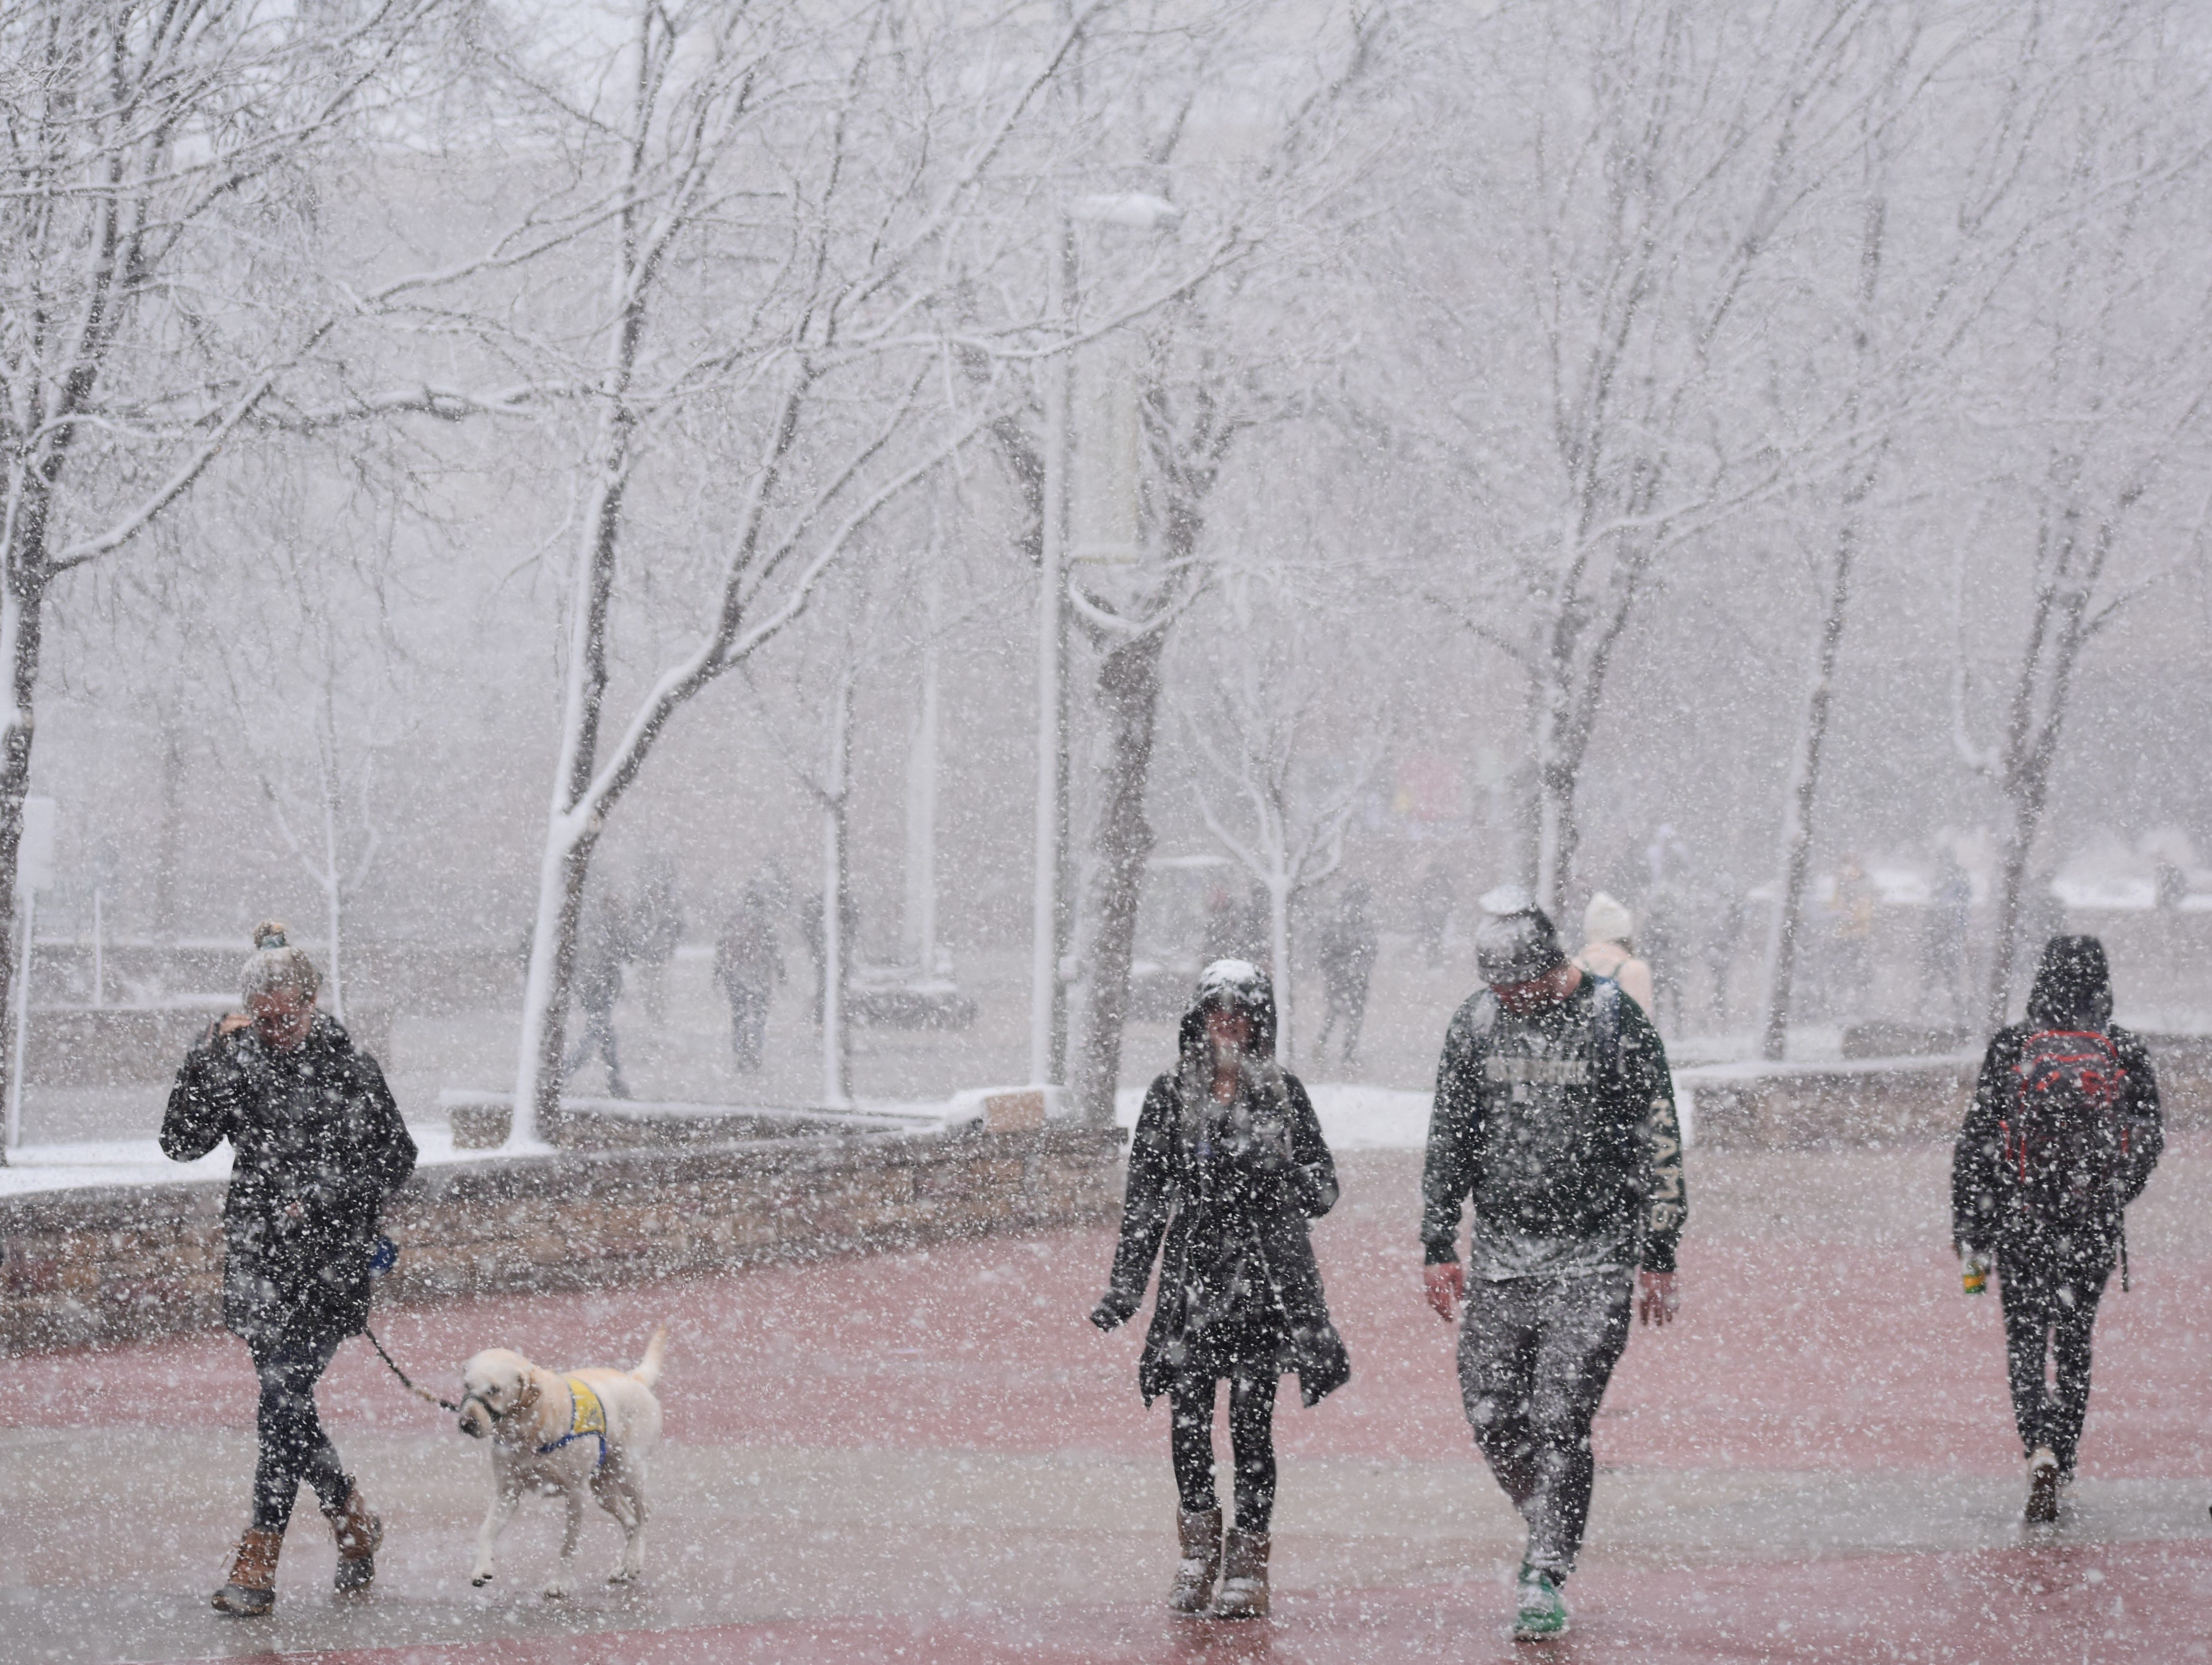 CSU students brave Wednesday's storm before classes were cancelled.